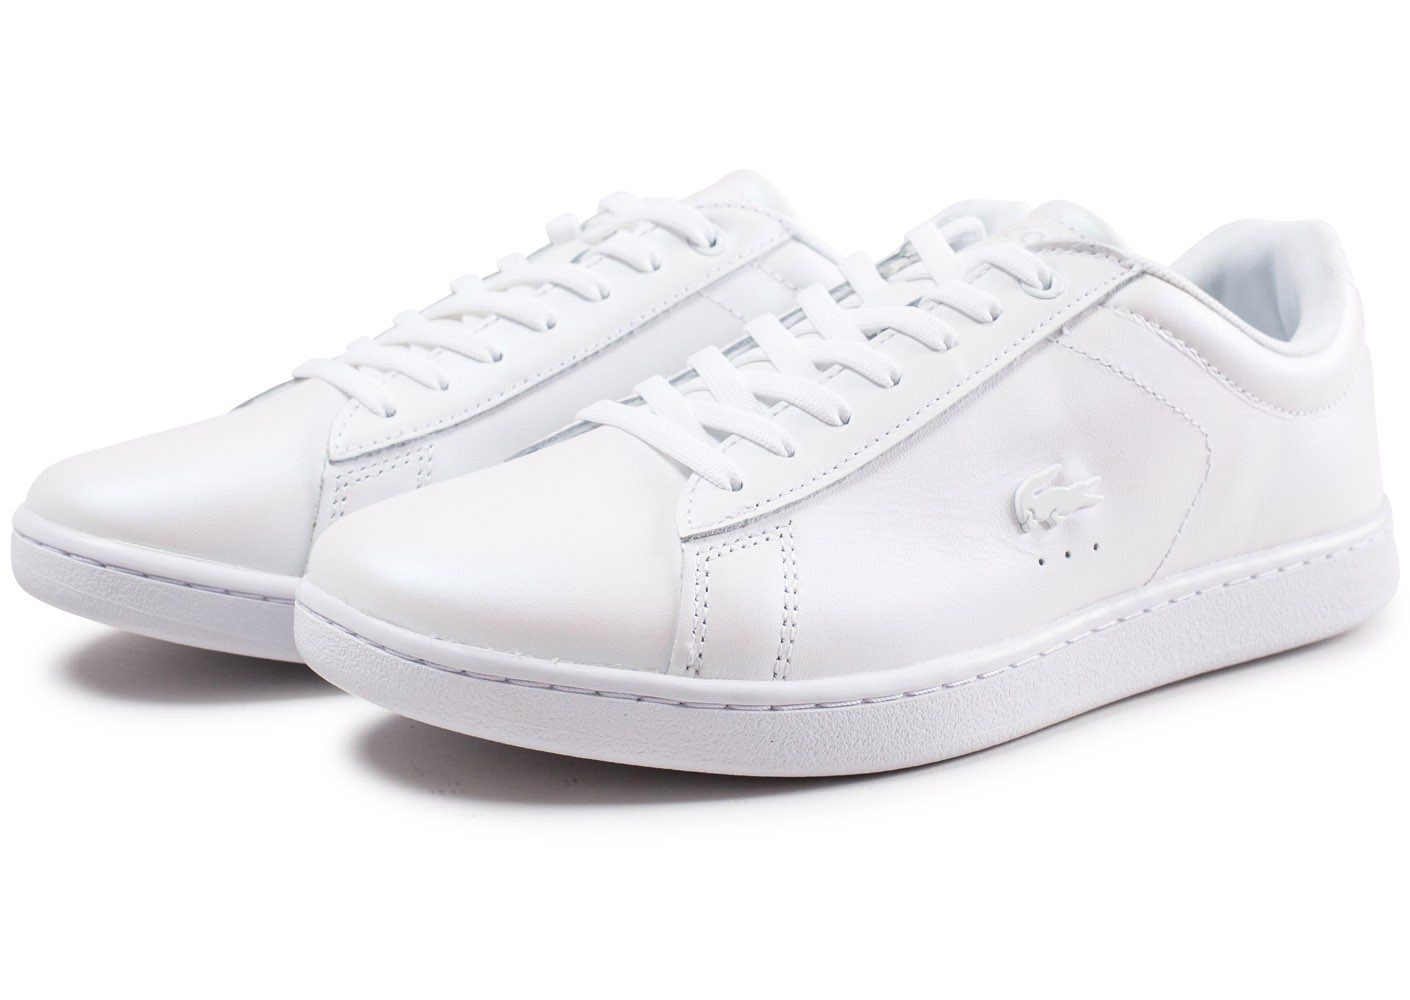 Lacoste Les Carnaby Ahhqwed Femme Toutes Evo Blanche Chaussures Baskets Tq1w6xagC